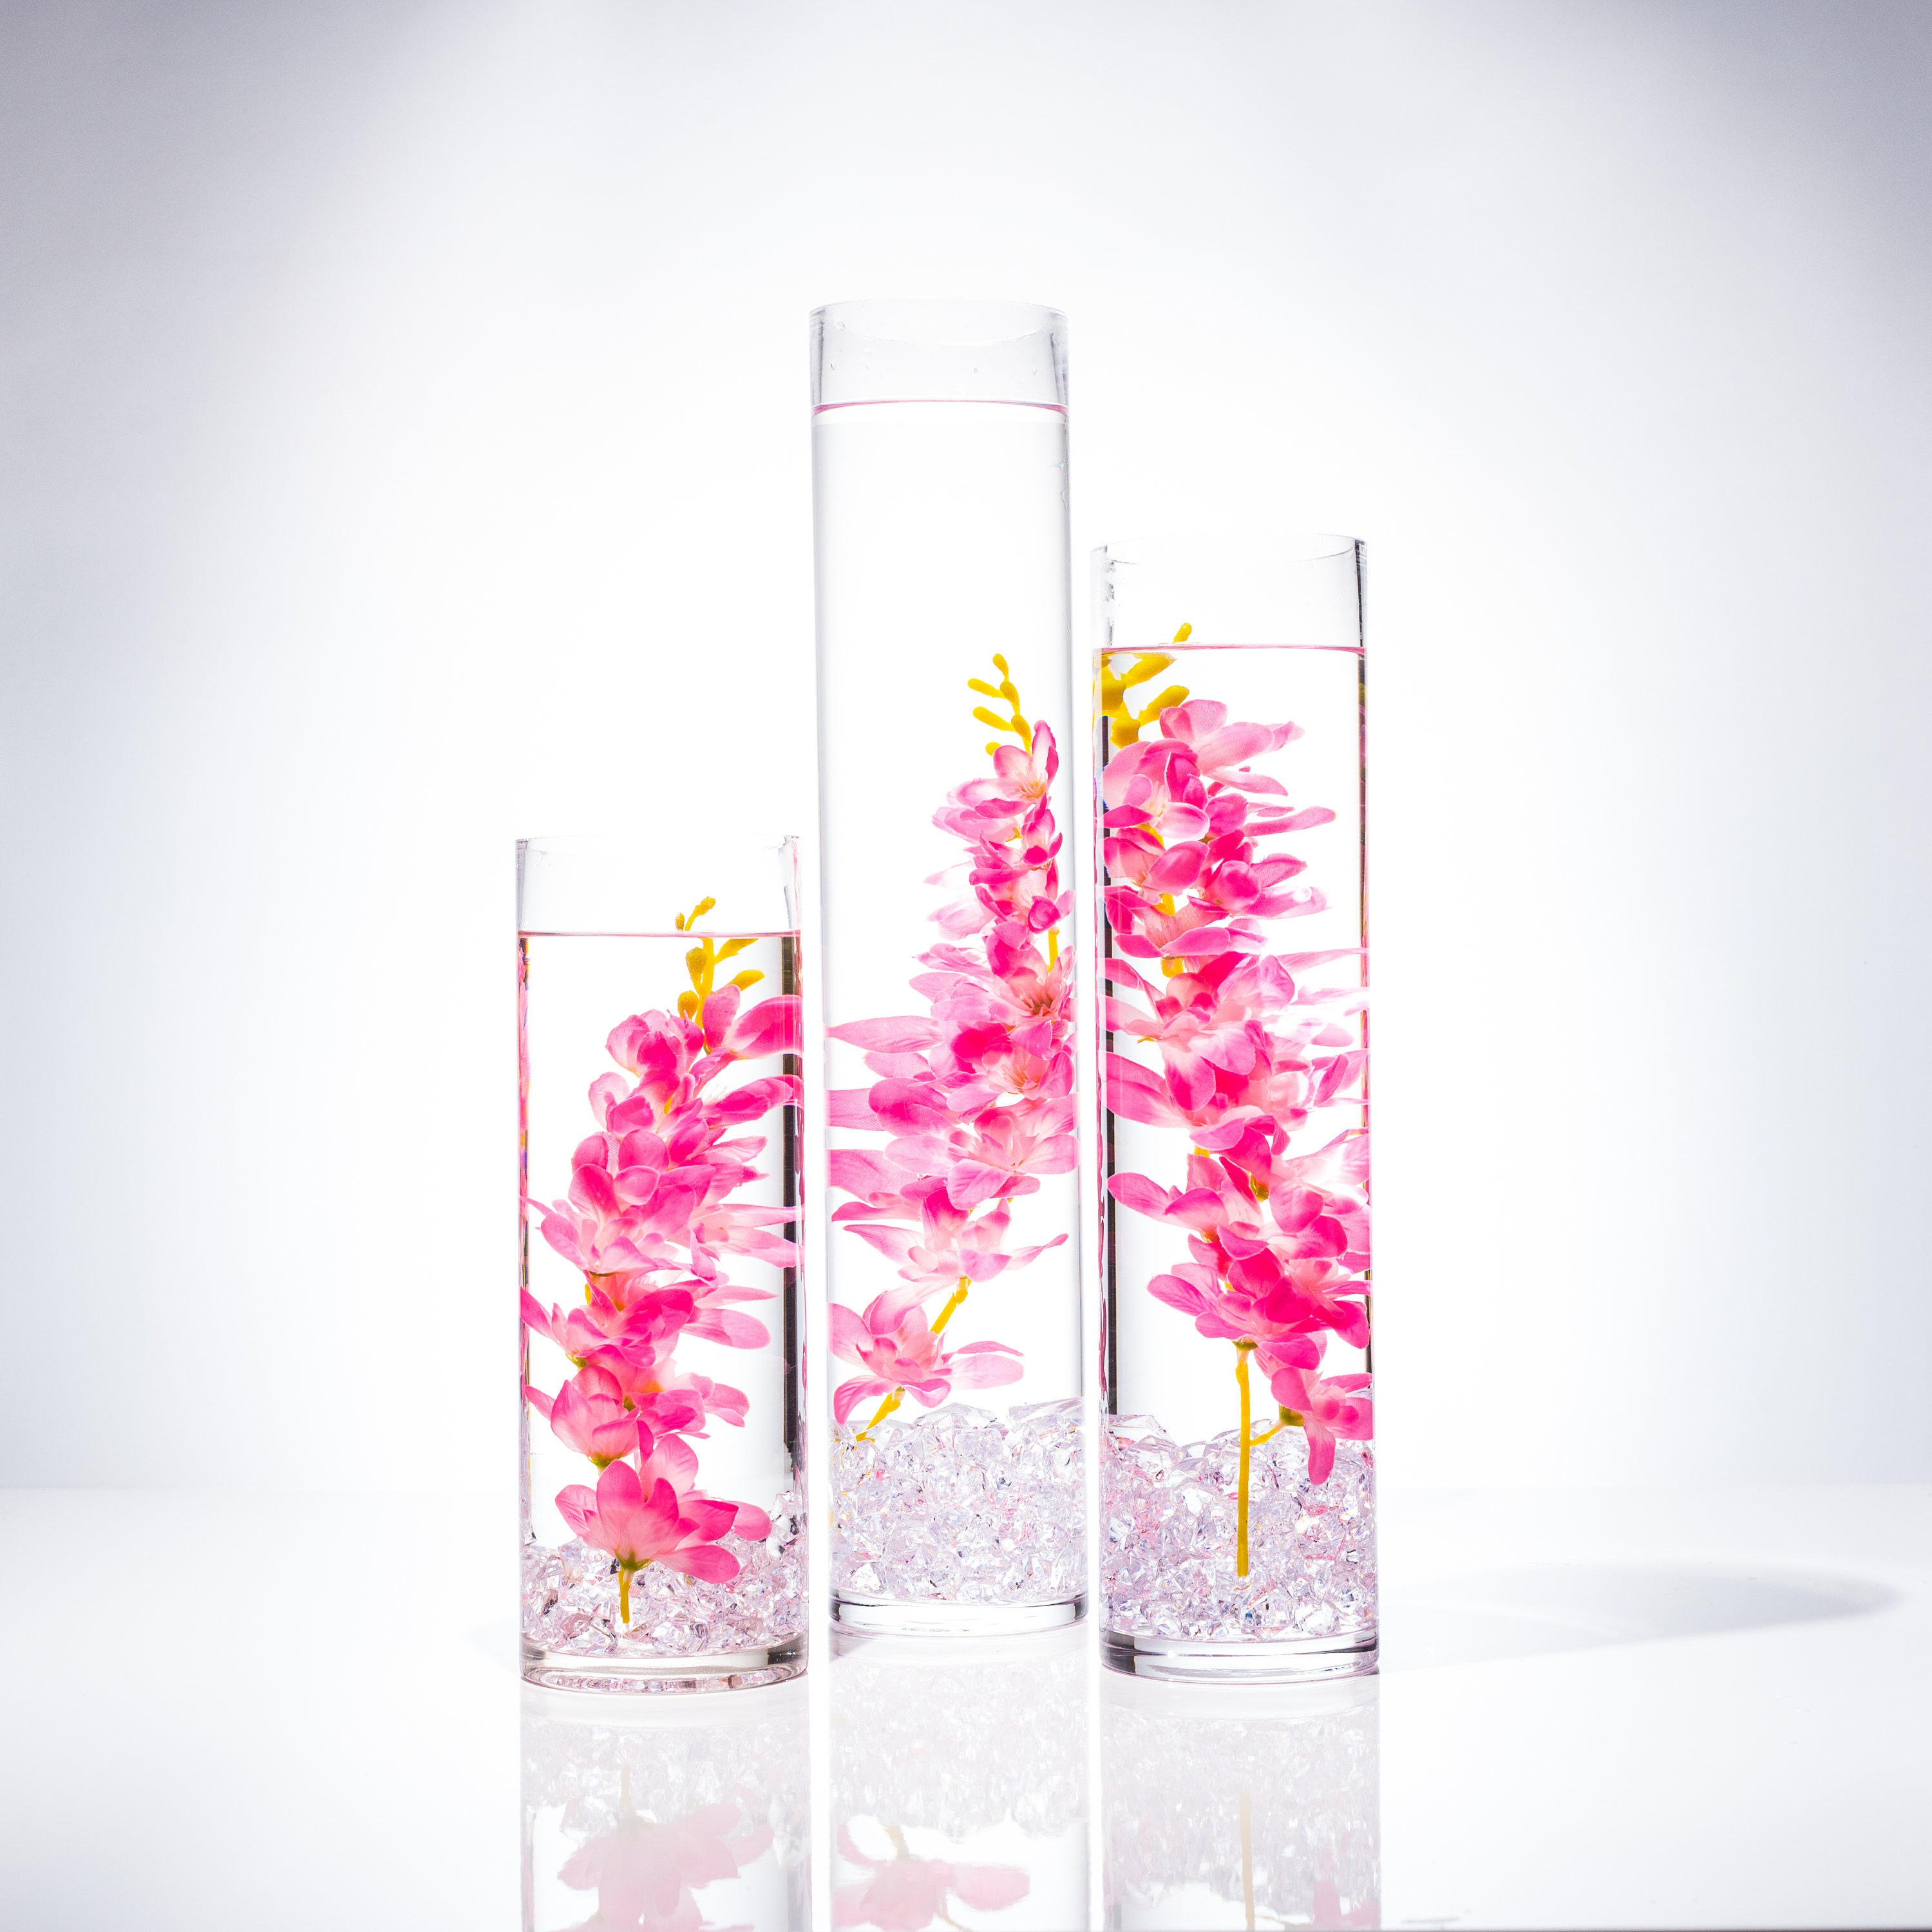 Submersible Pink Wisteria Floral Wedding Centerpiece with